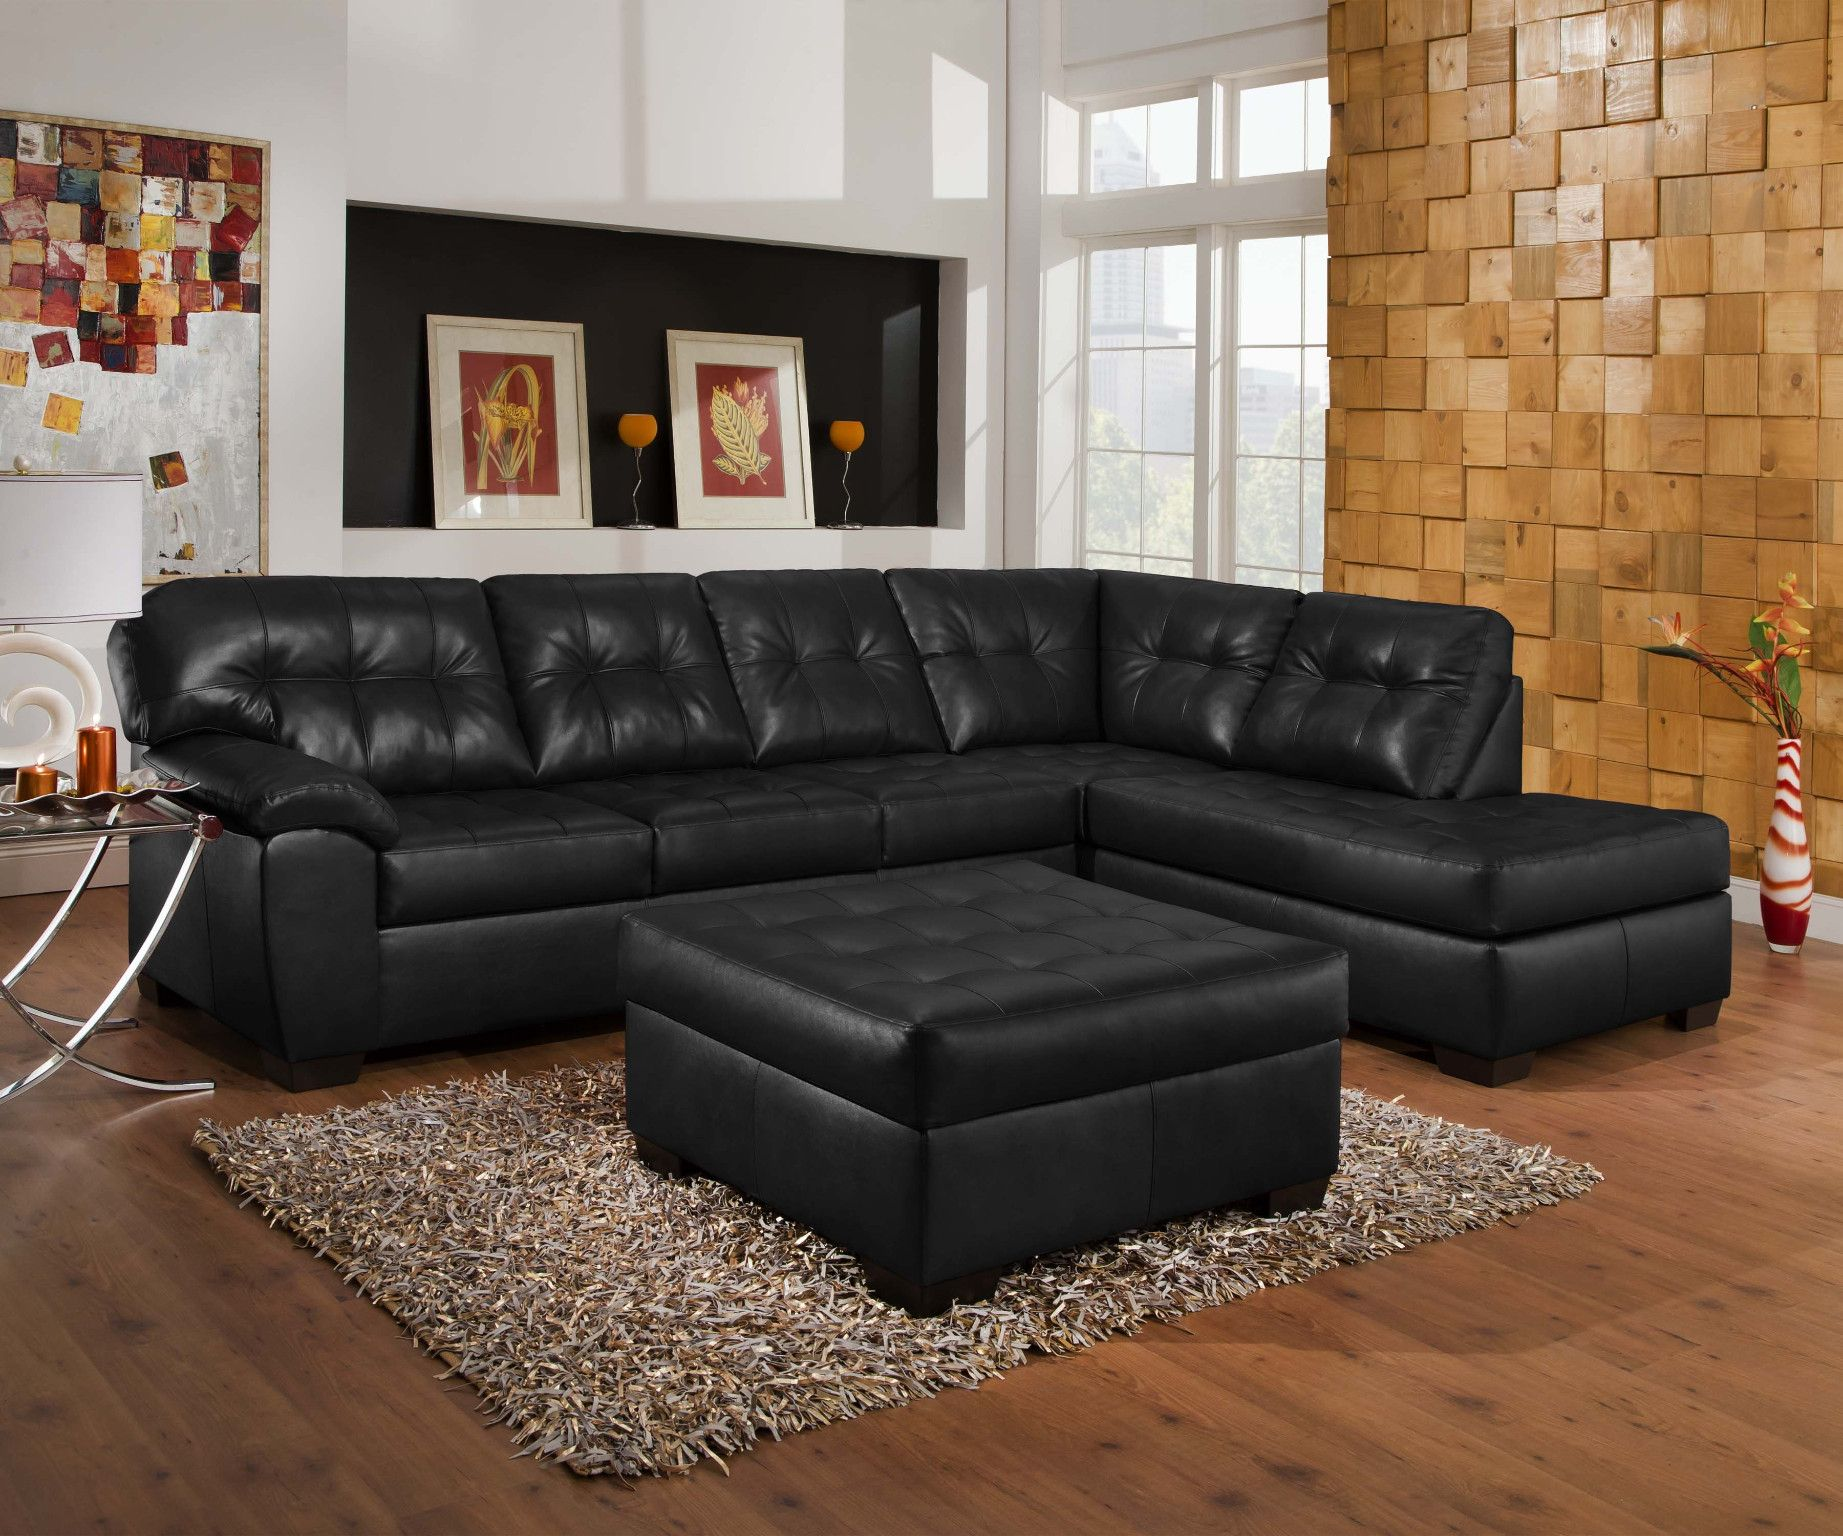 2 Piece Sectional Sofa In Soho Onyx Breathable Black Bonded Leather 899 00 Sofa 92 X 36 Red Leather Sofa Sectional Red Sectional Sofa Red Leather Sofa